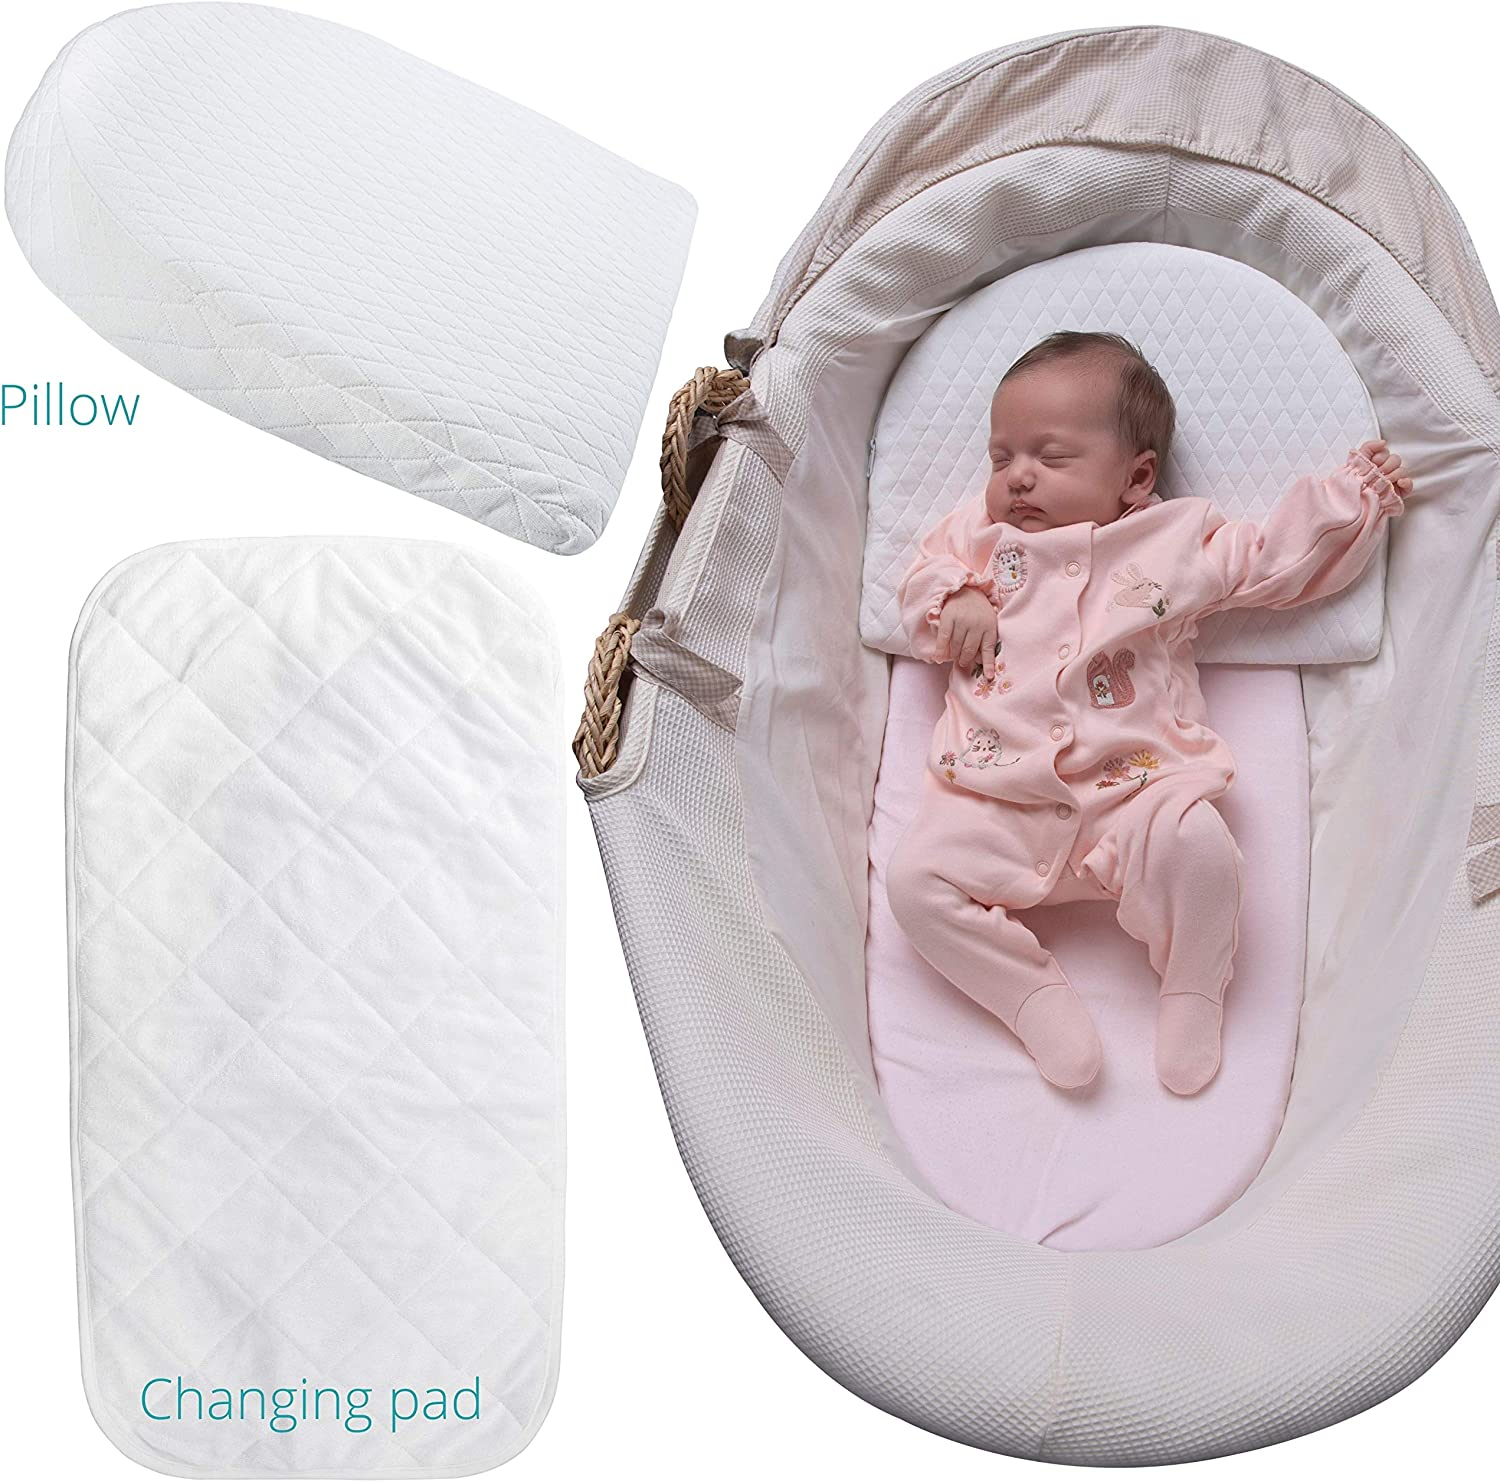 Baby Wedge Pillow Bassinet Wedge Pillow Baby with Waterproof Changing Pad and Removable Cotton Cover by Aripino for Acid Reflux Baby Wedge Sleep Positioner Infant Pillow Newborn Wedge